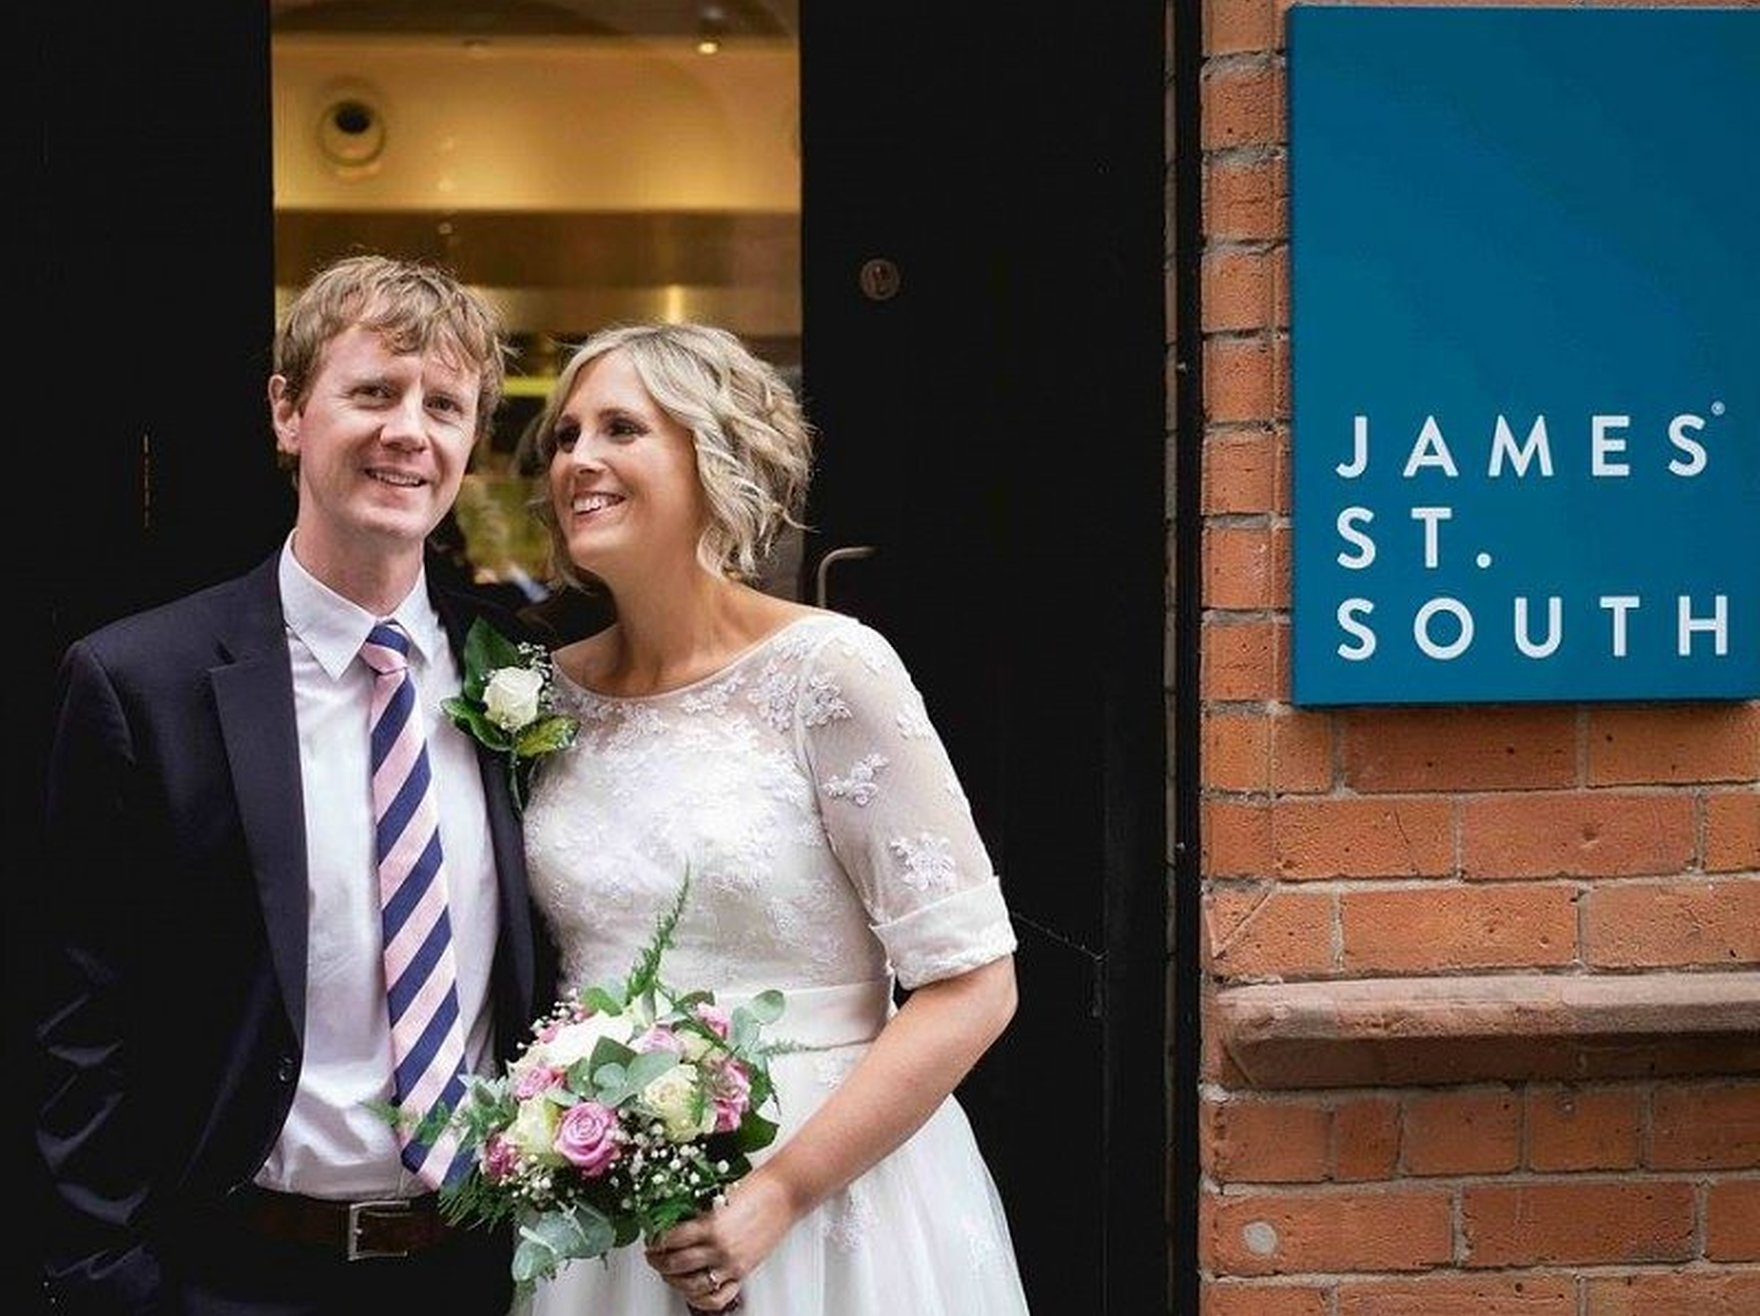 Weddings at James St. South